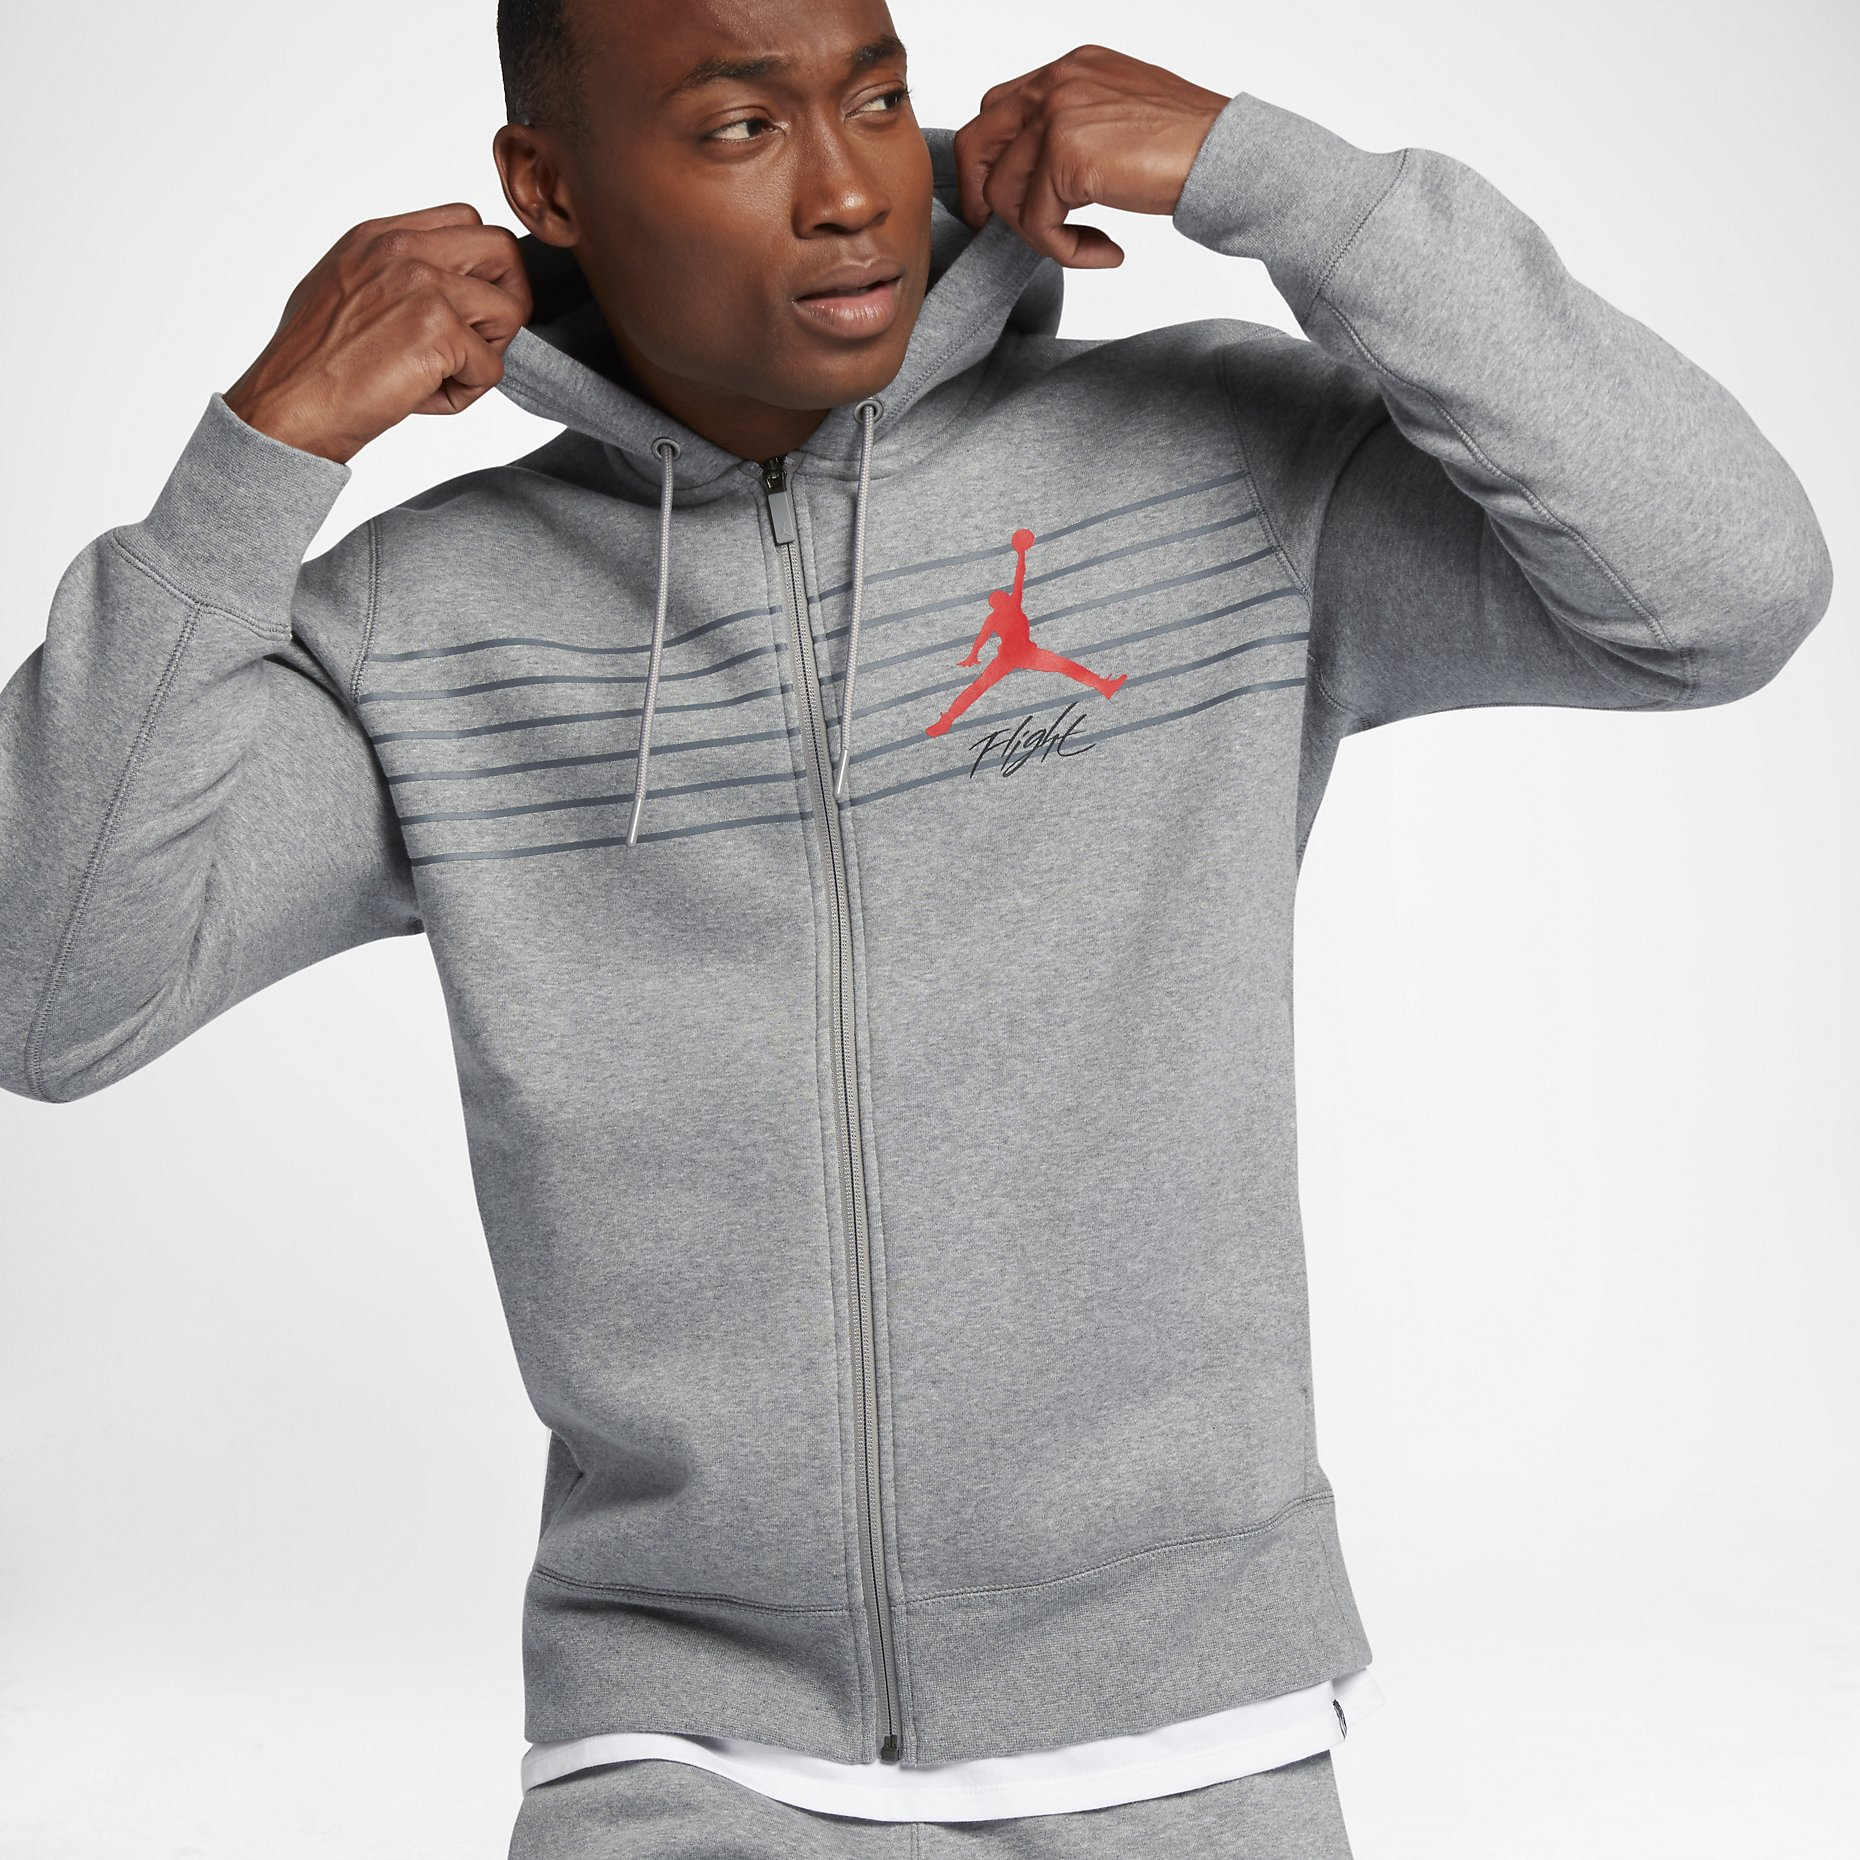 jordan-flight-fleece-mens-full-zip-hoodie.jpg